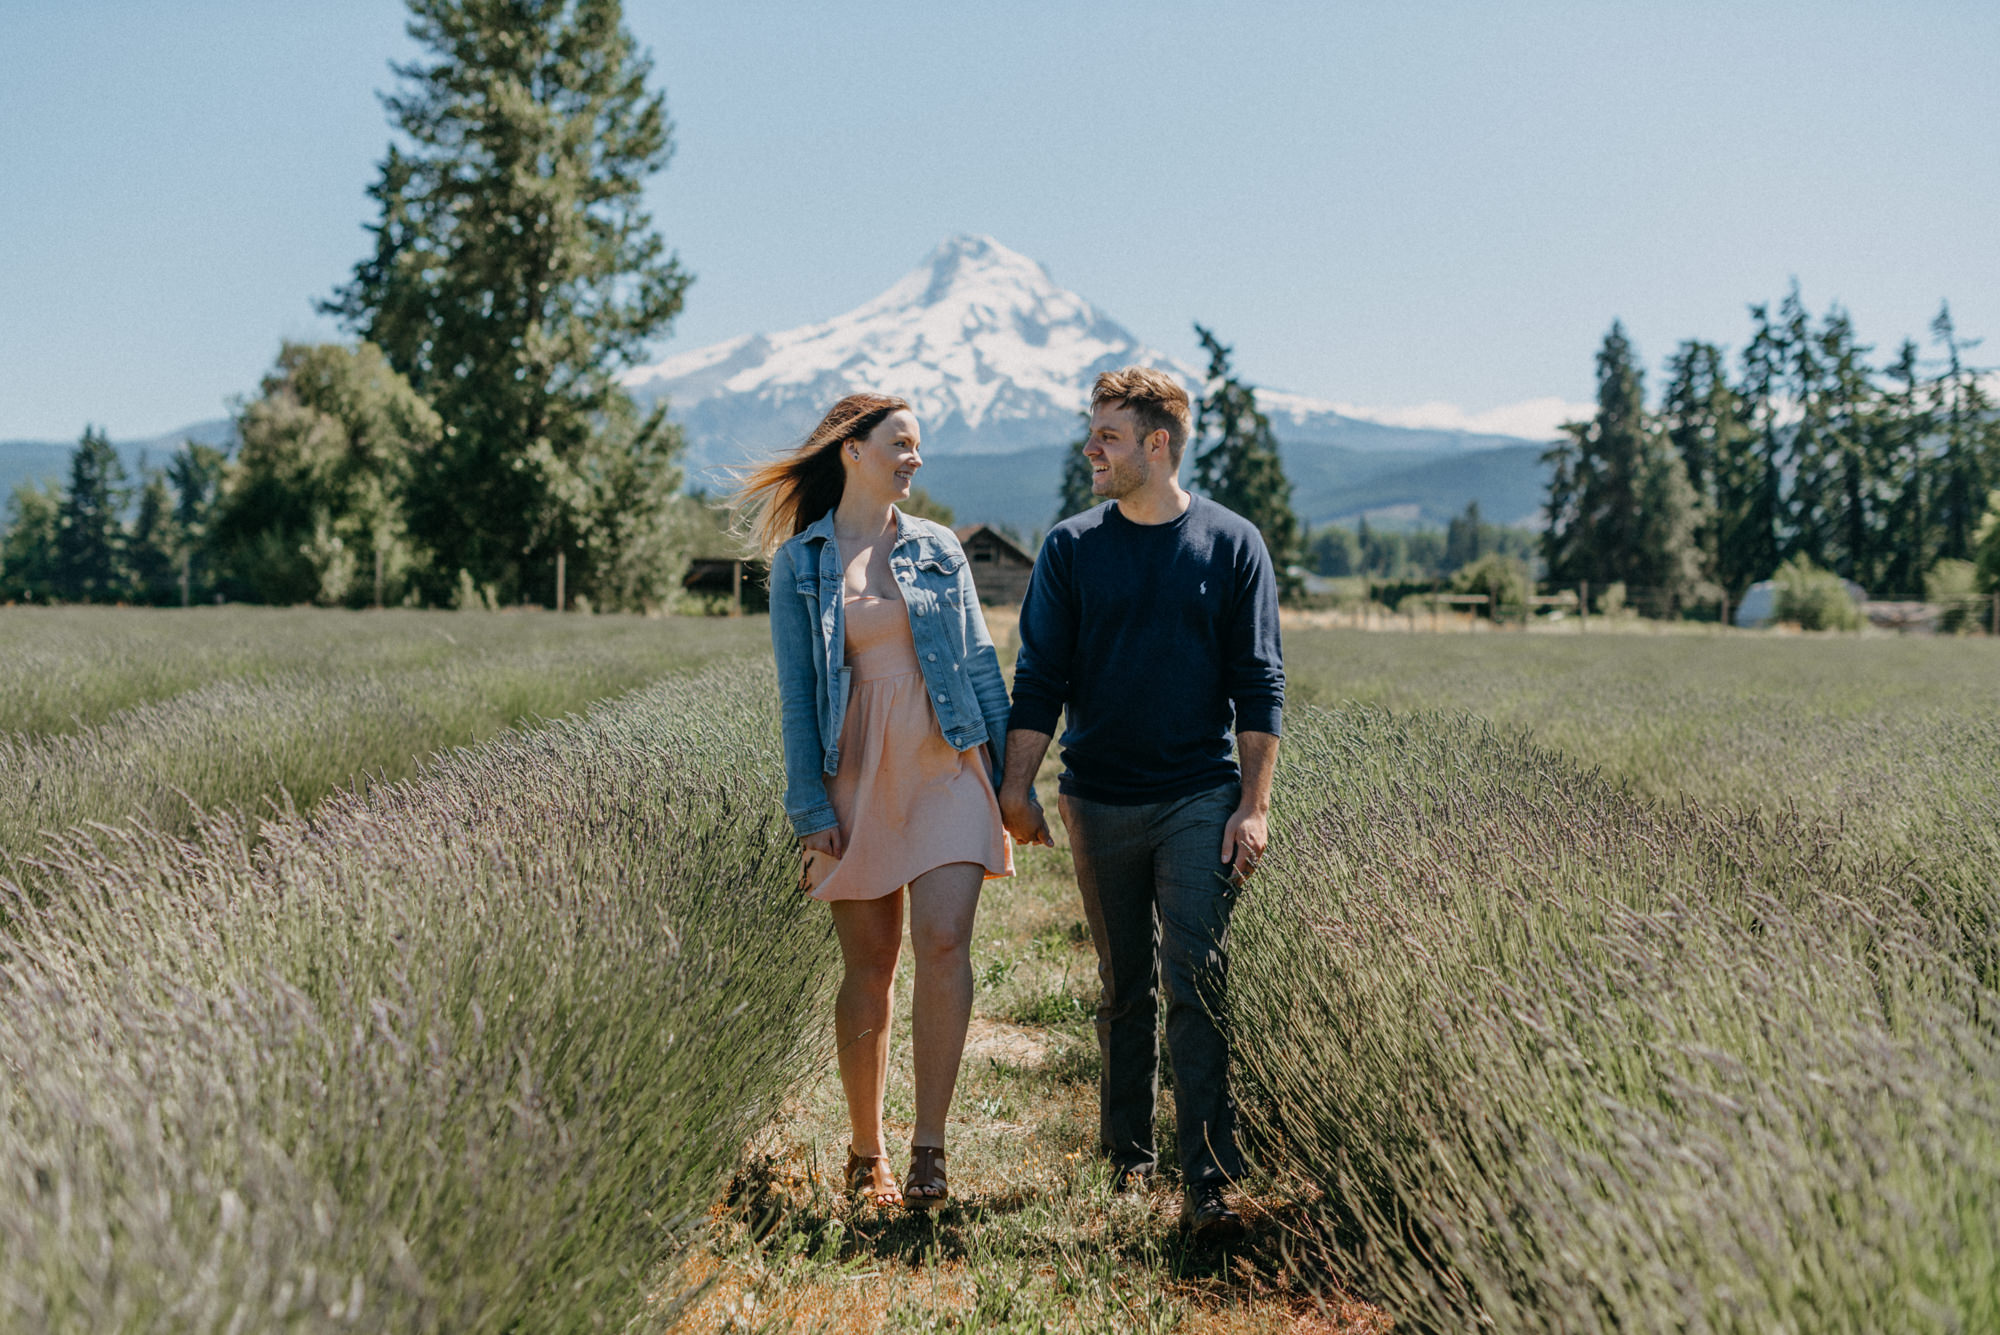 4-Mt-hood-lavender-farms-engagment-couple-summer-6945.jpg